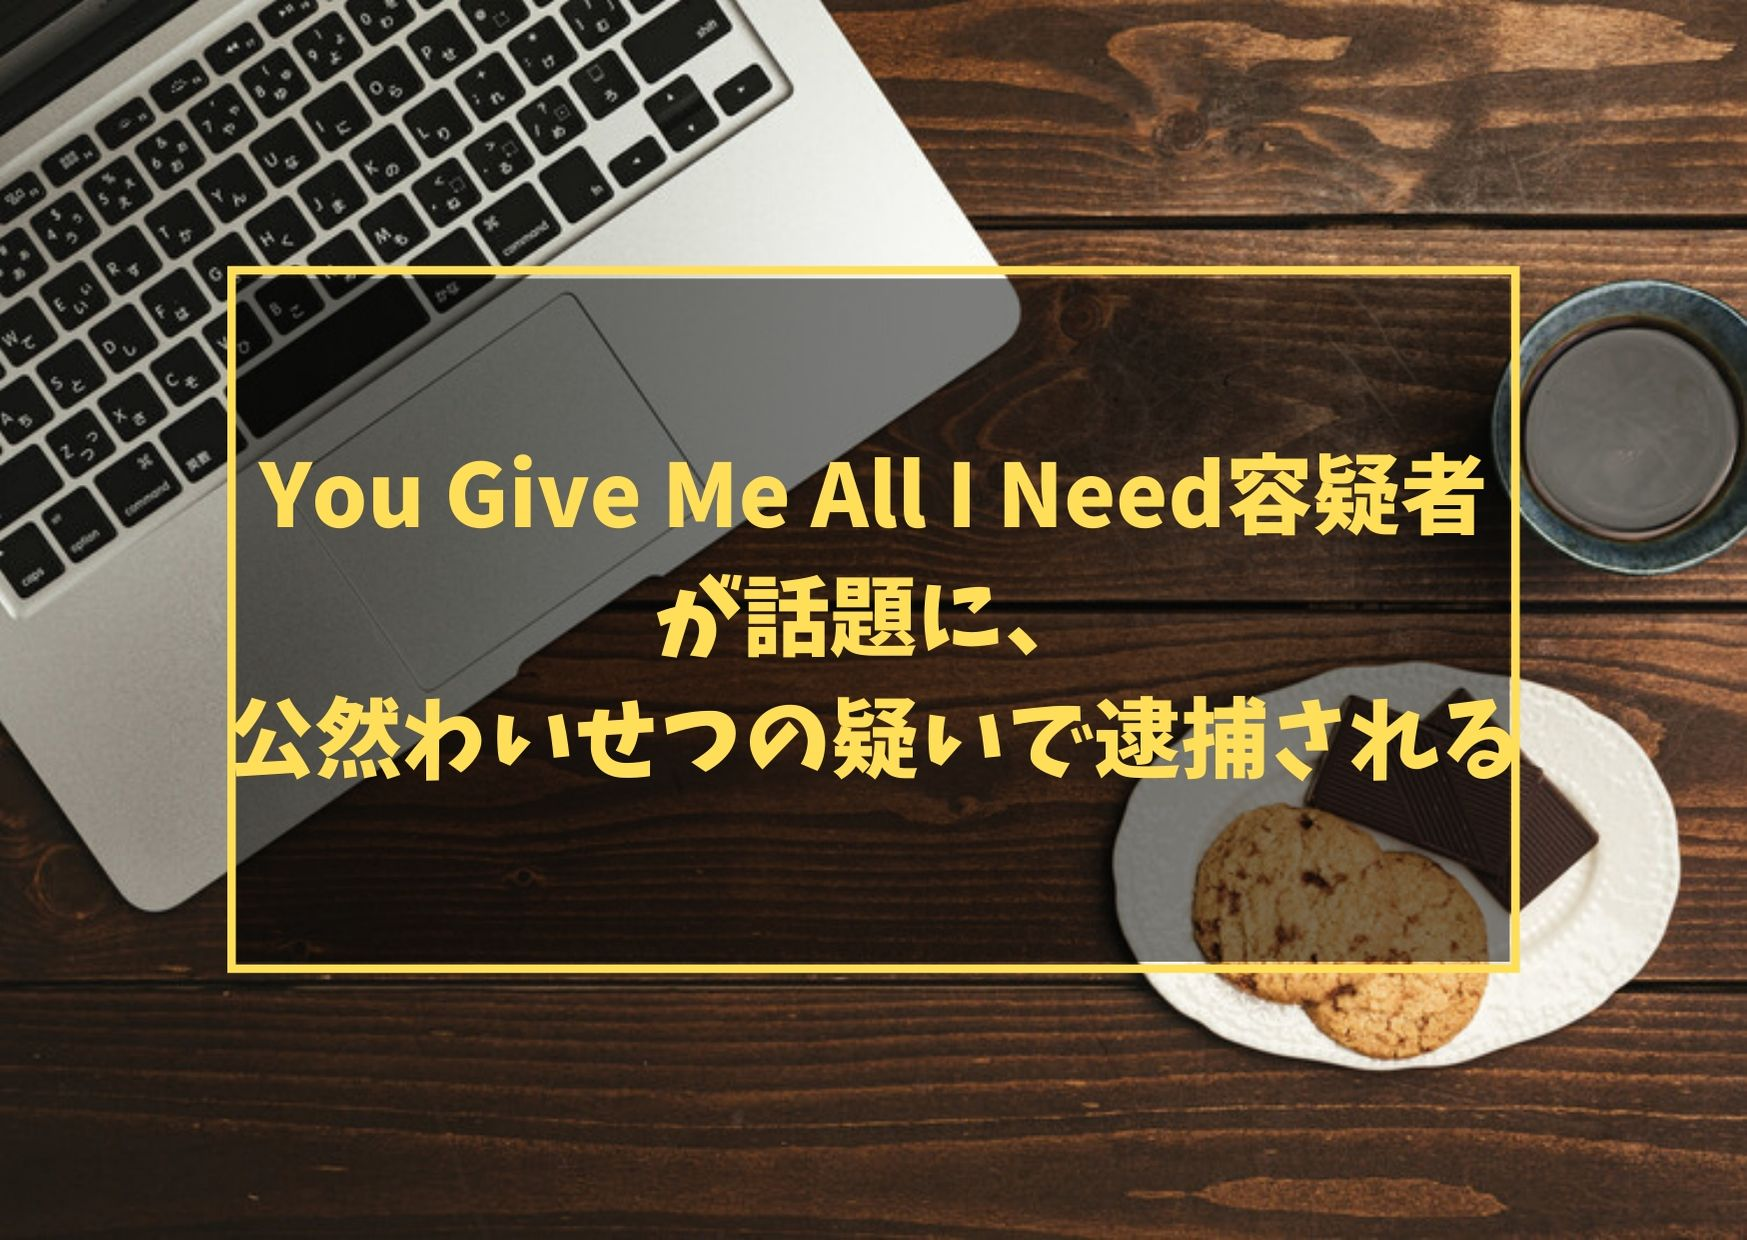 You Give Me All I Need容疑者が話題に、公然わいせつの疑いで逮捕される